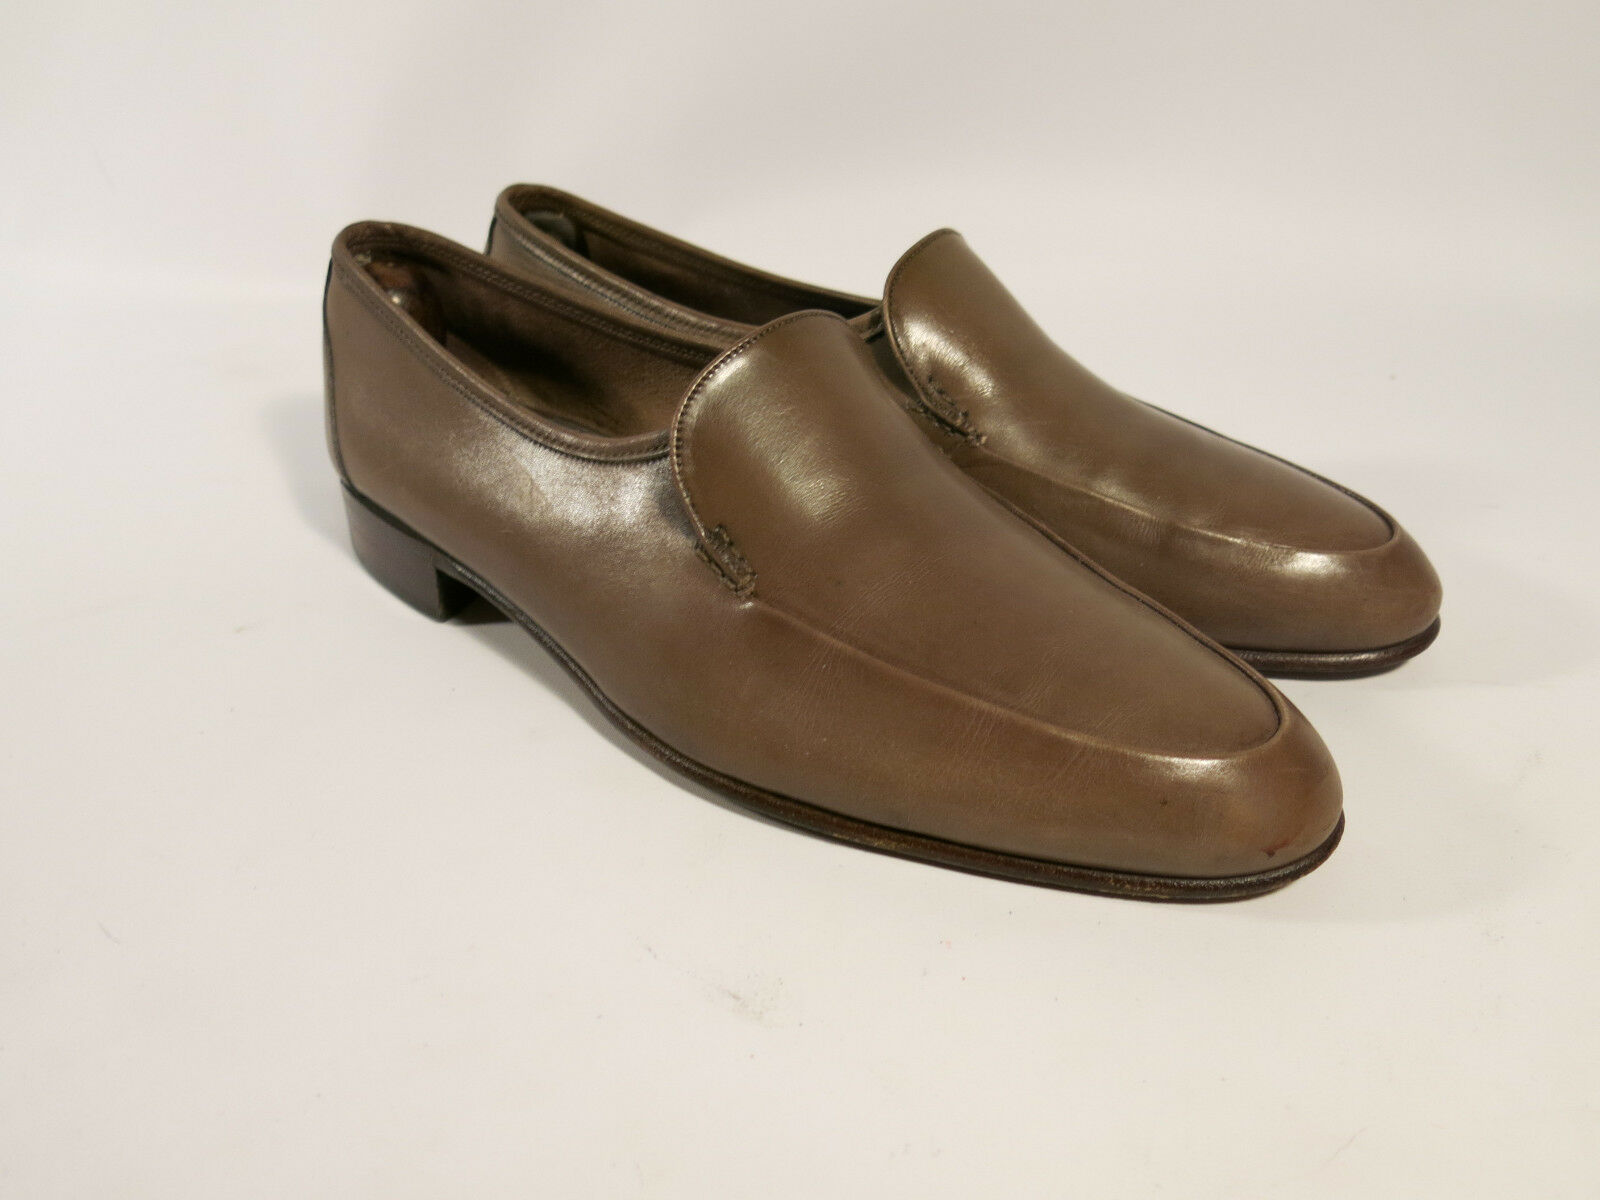 Bally Mason Made Switzerland Men's 9.5 B Apron Toe Loafers Light Brown Leather